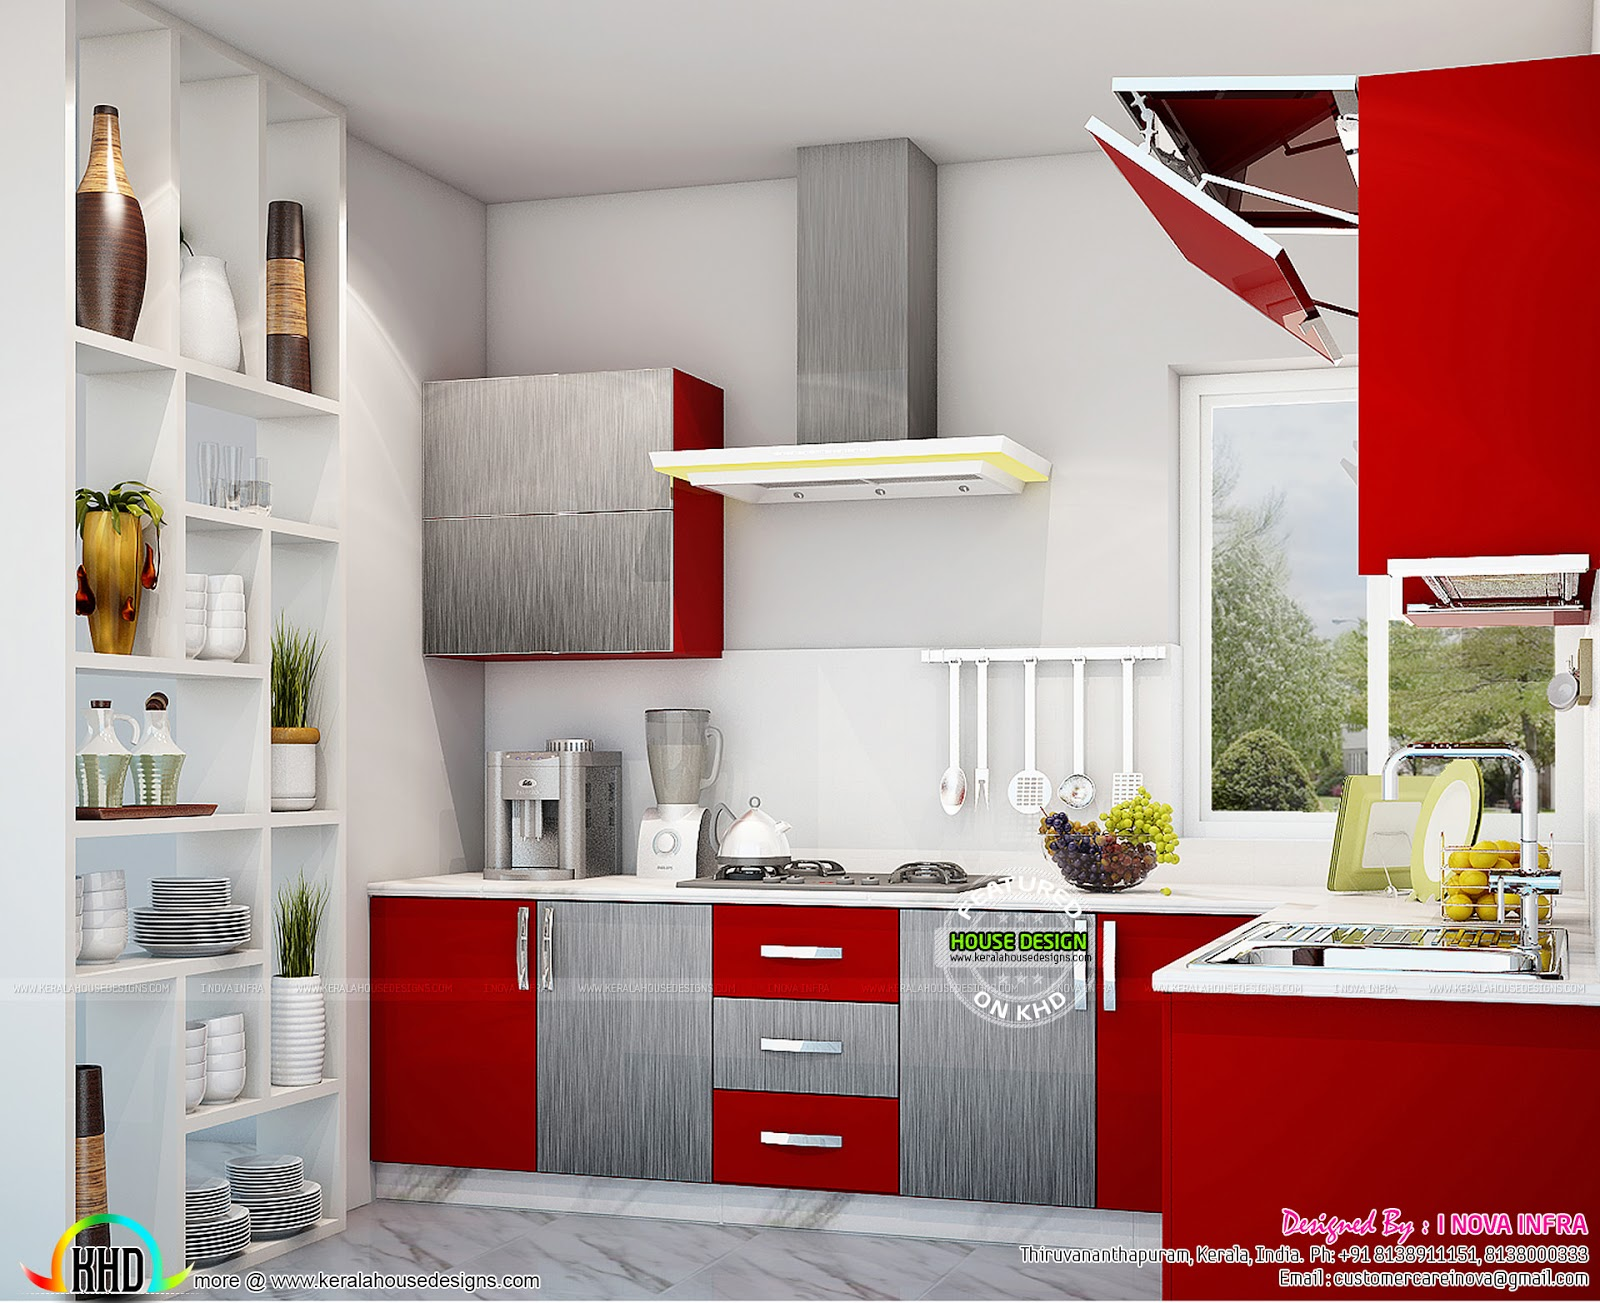 Kitchen interior works at trivandrum kerala home design for Kitchen interior ideas